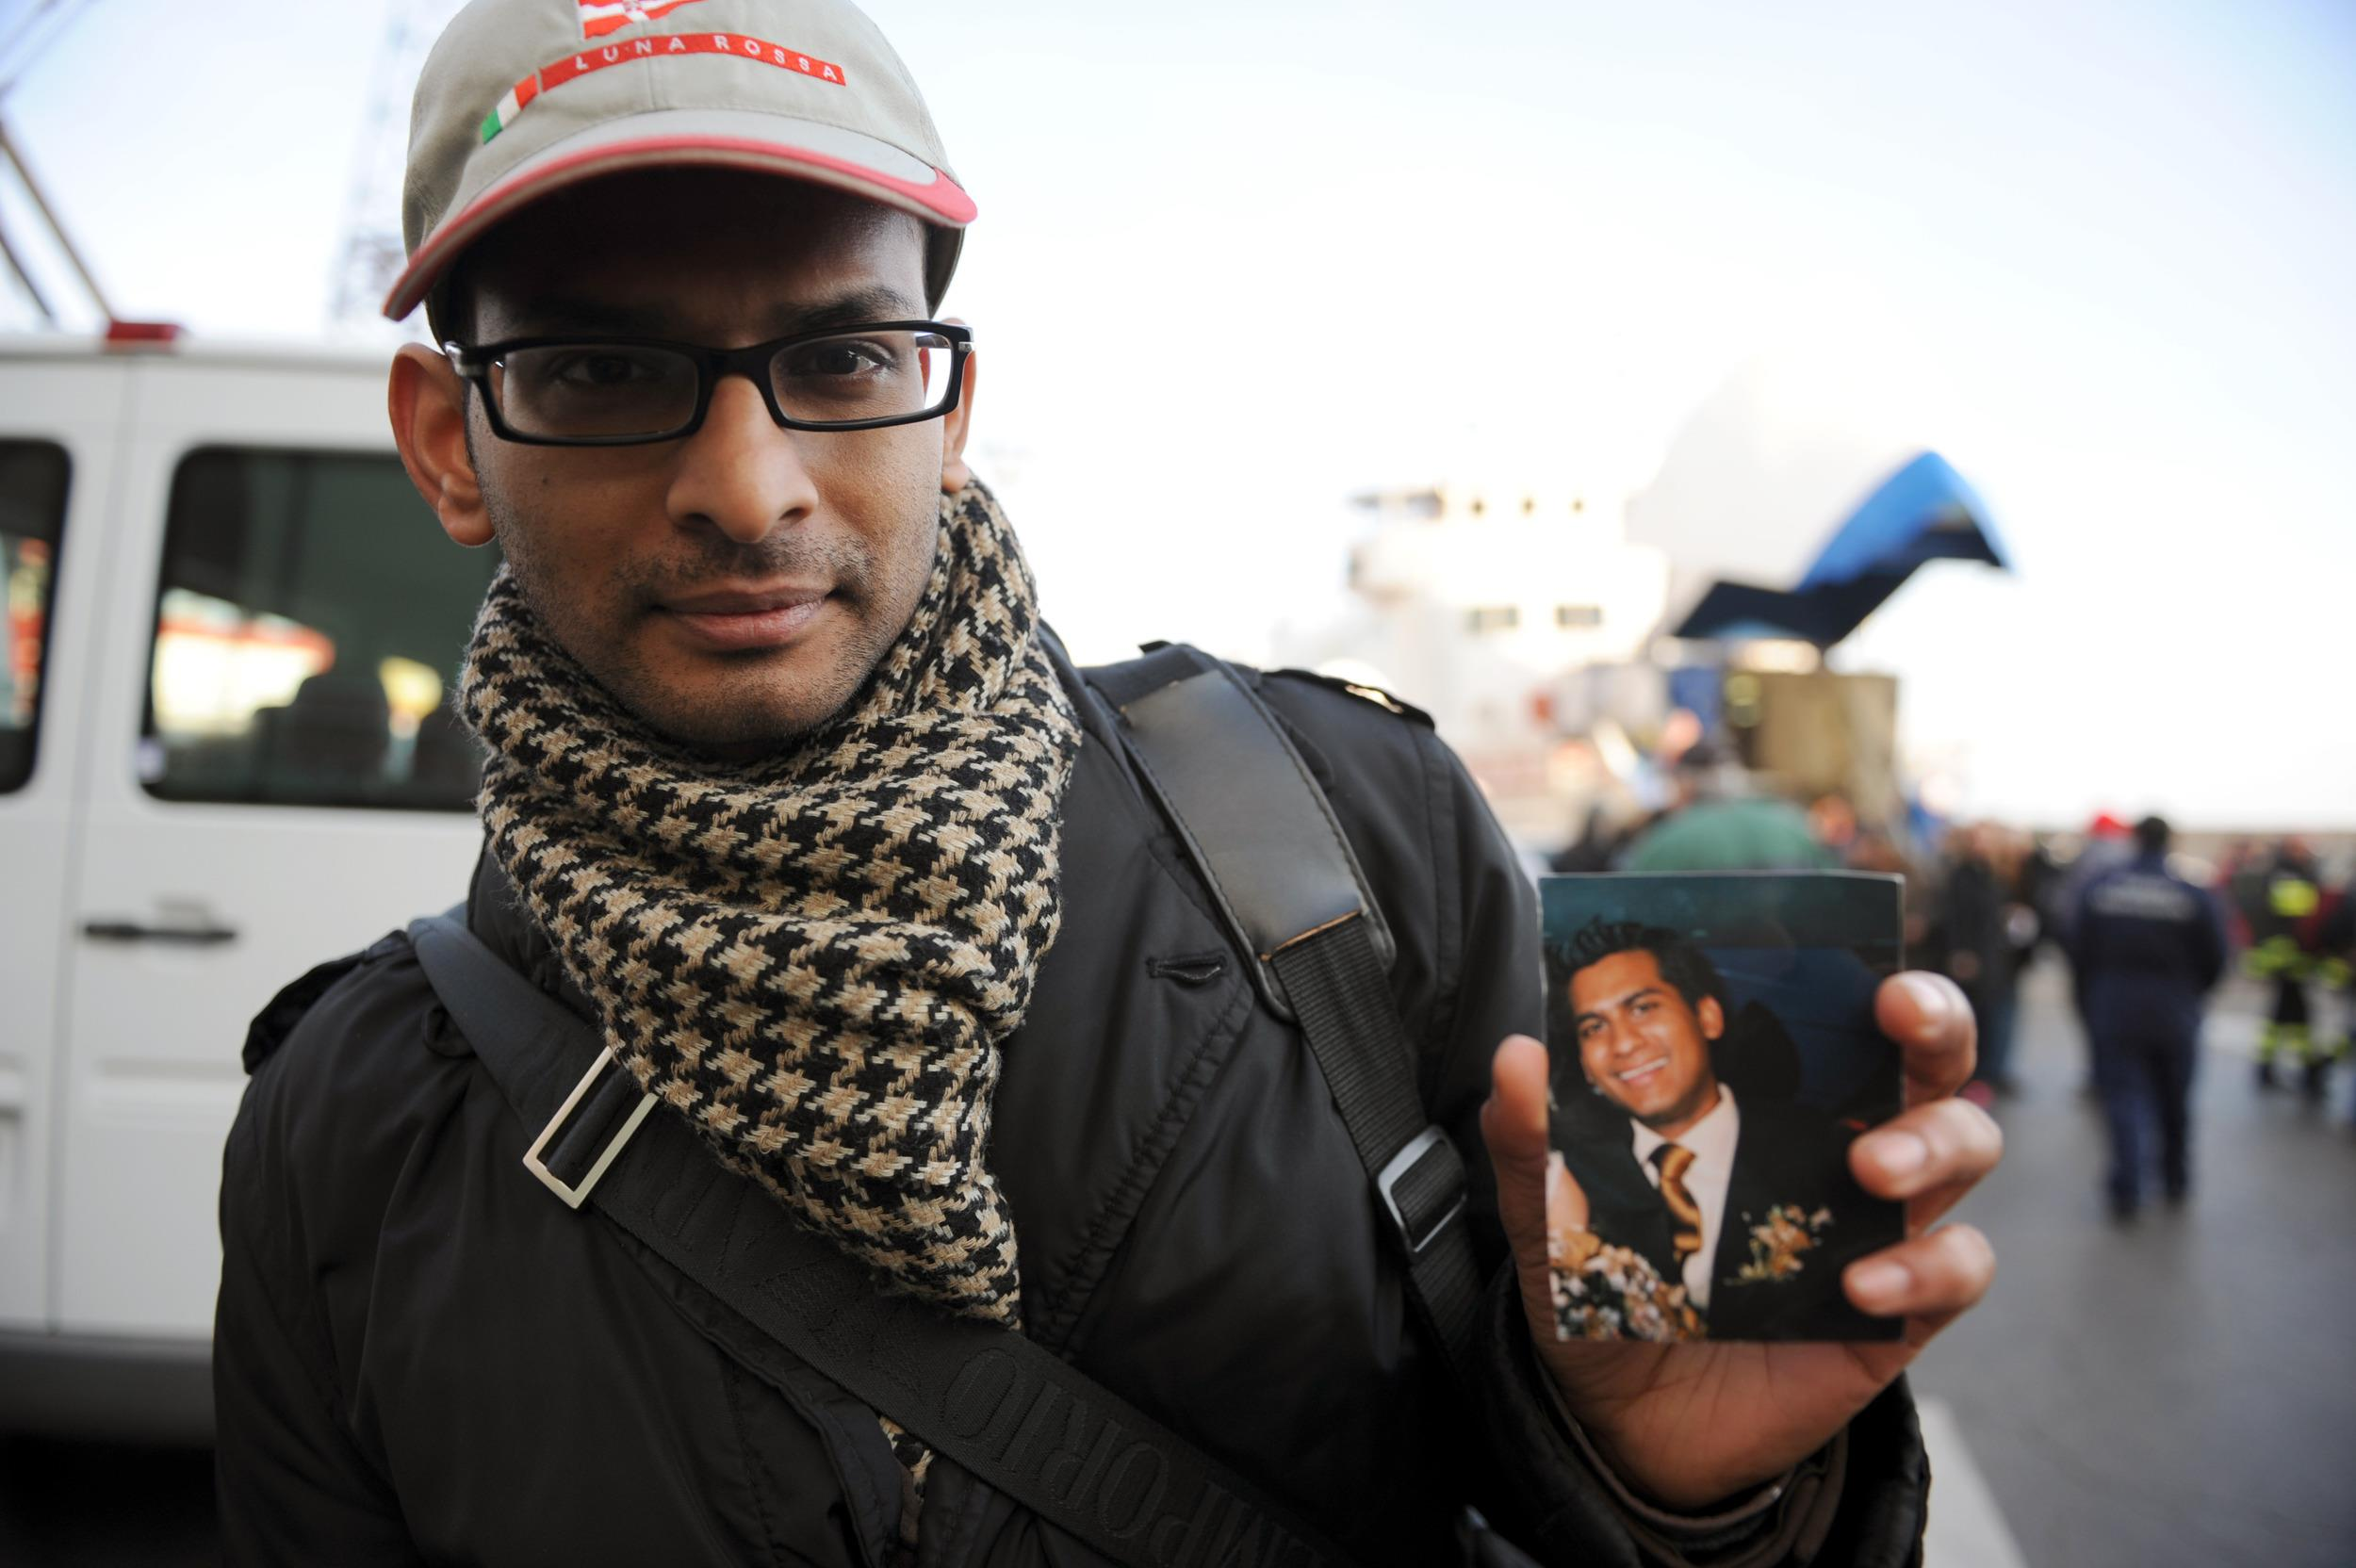 Image: Indian Kevin Rebello shows a picture of